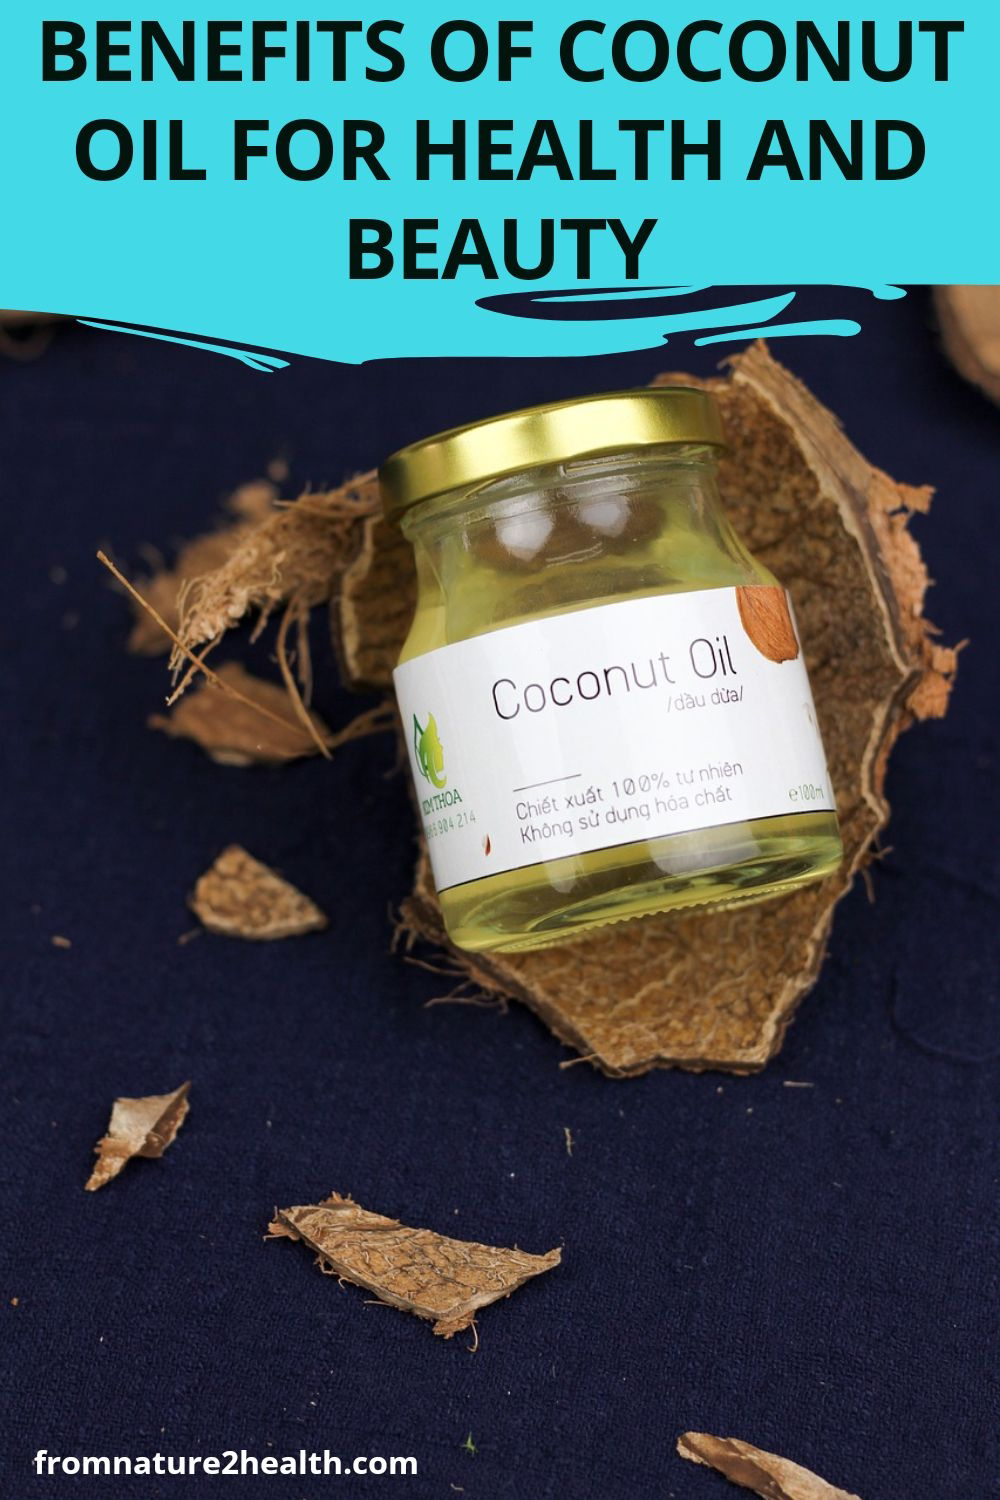 Benefits of Coconut Oil for Health and Beauty, antioxidants, osteoporosis